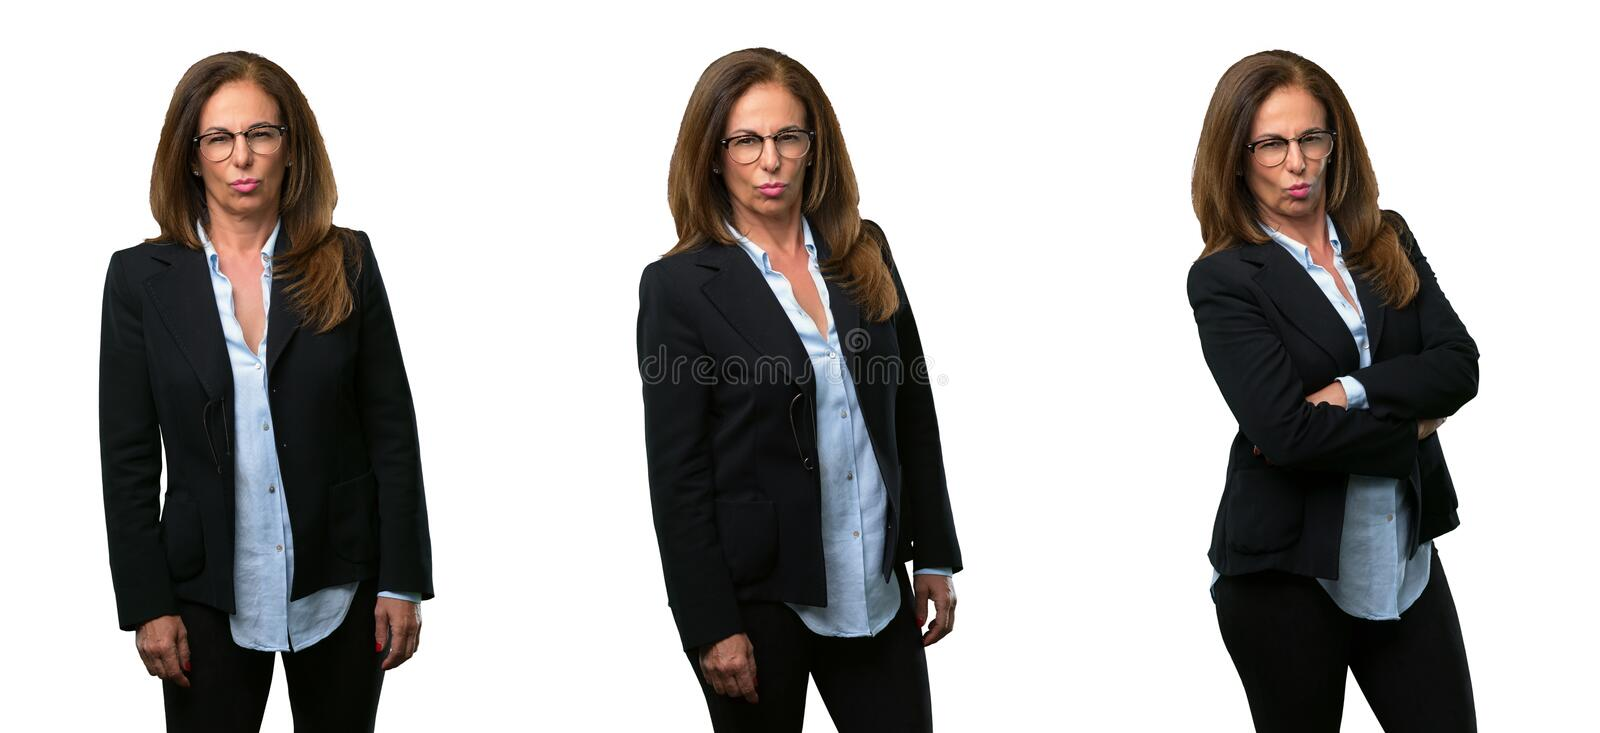 Middle age business woman with long hair stock photos